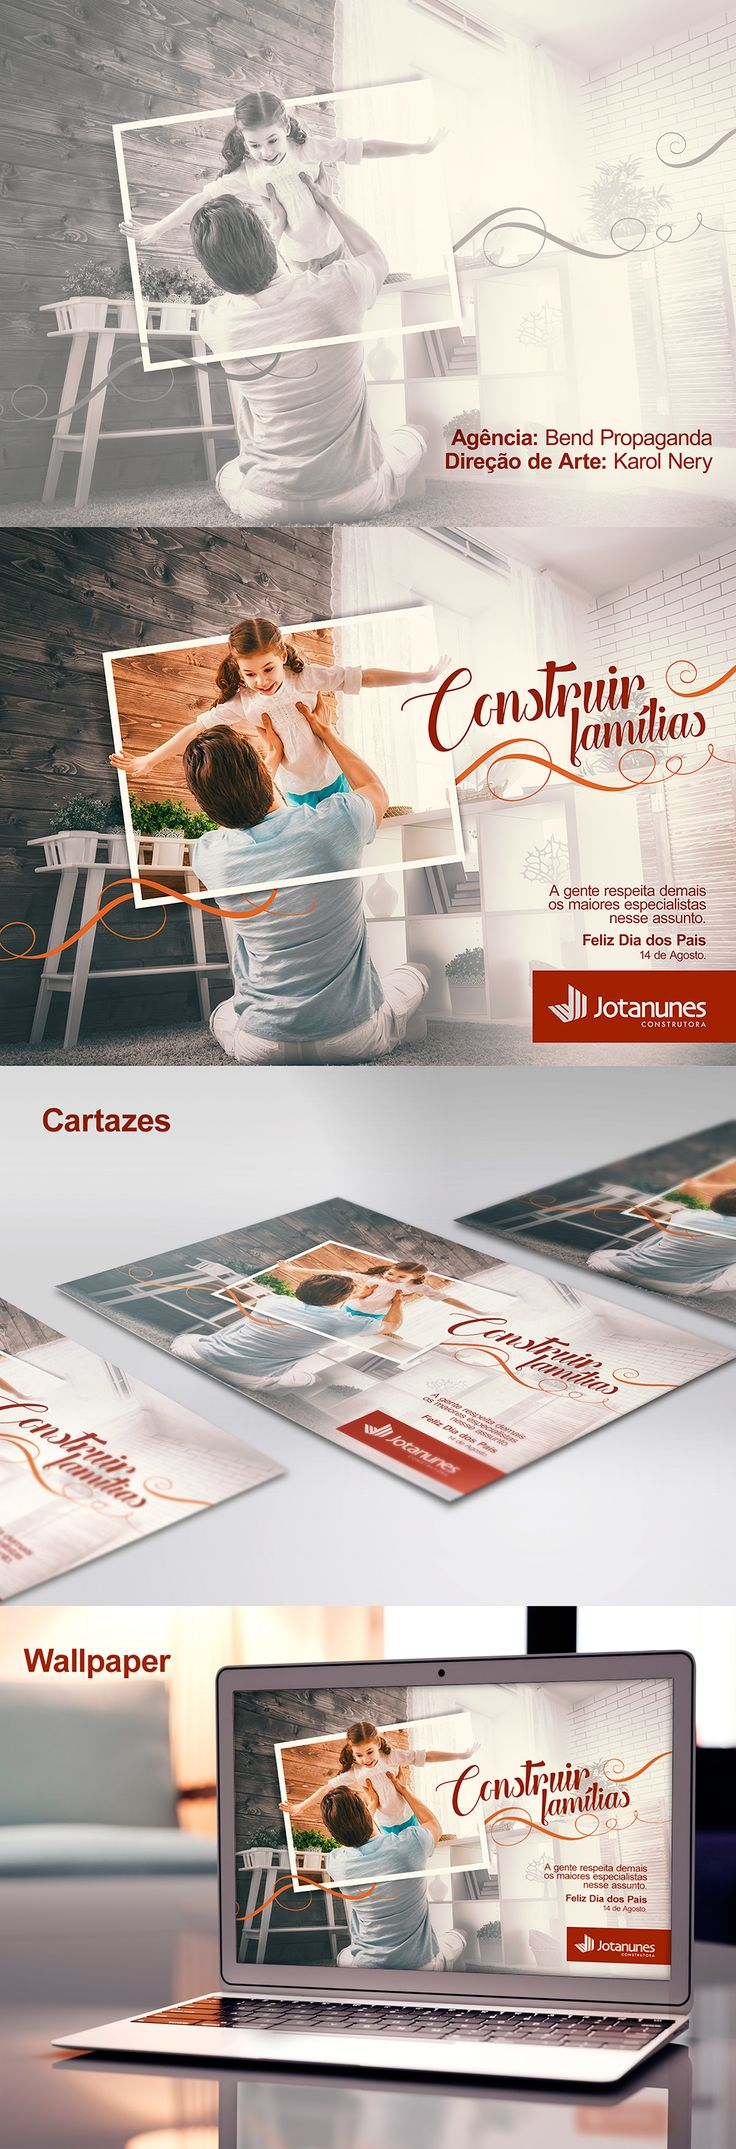 Dia dos Pais - Jotanunes on Behance